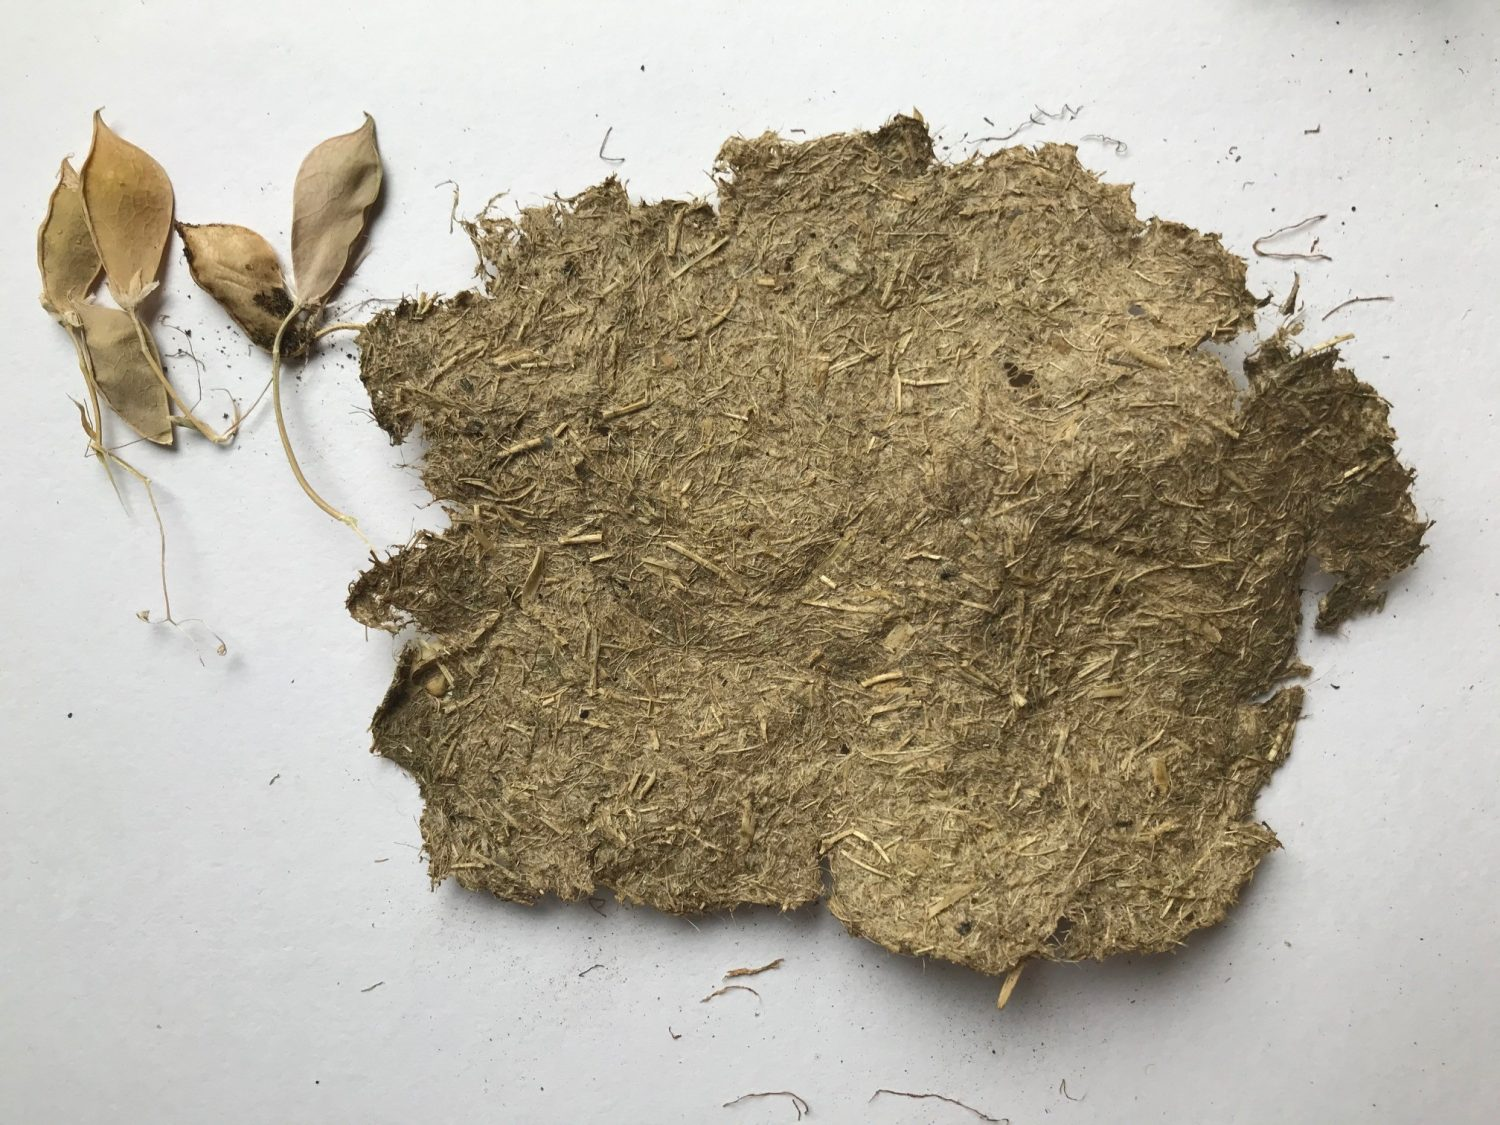 Making paper from grasspea